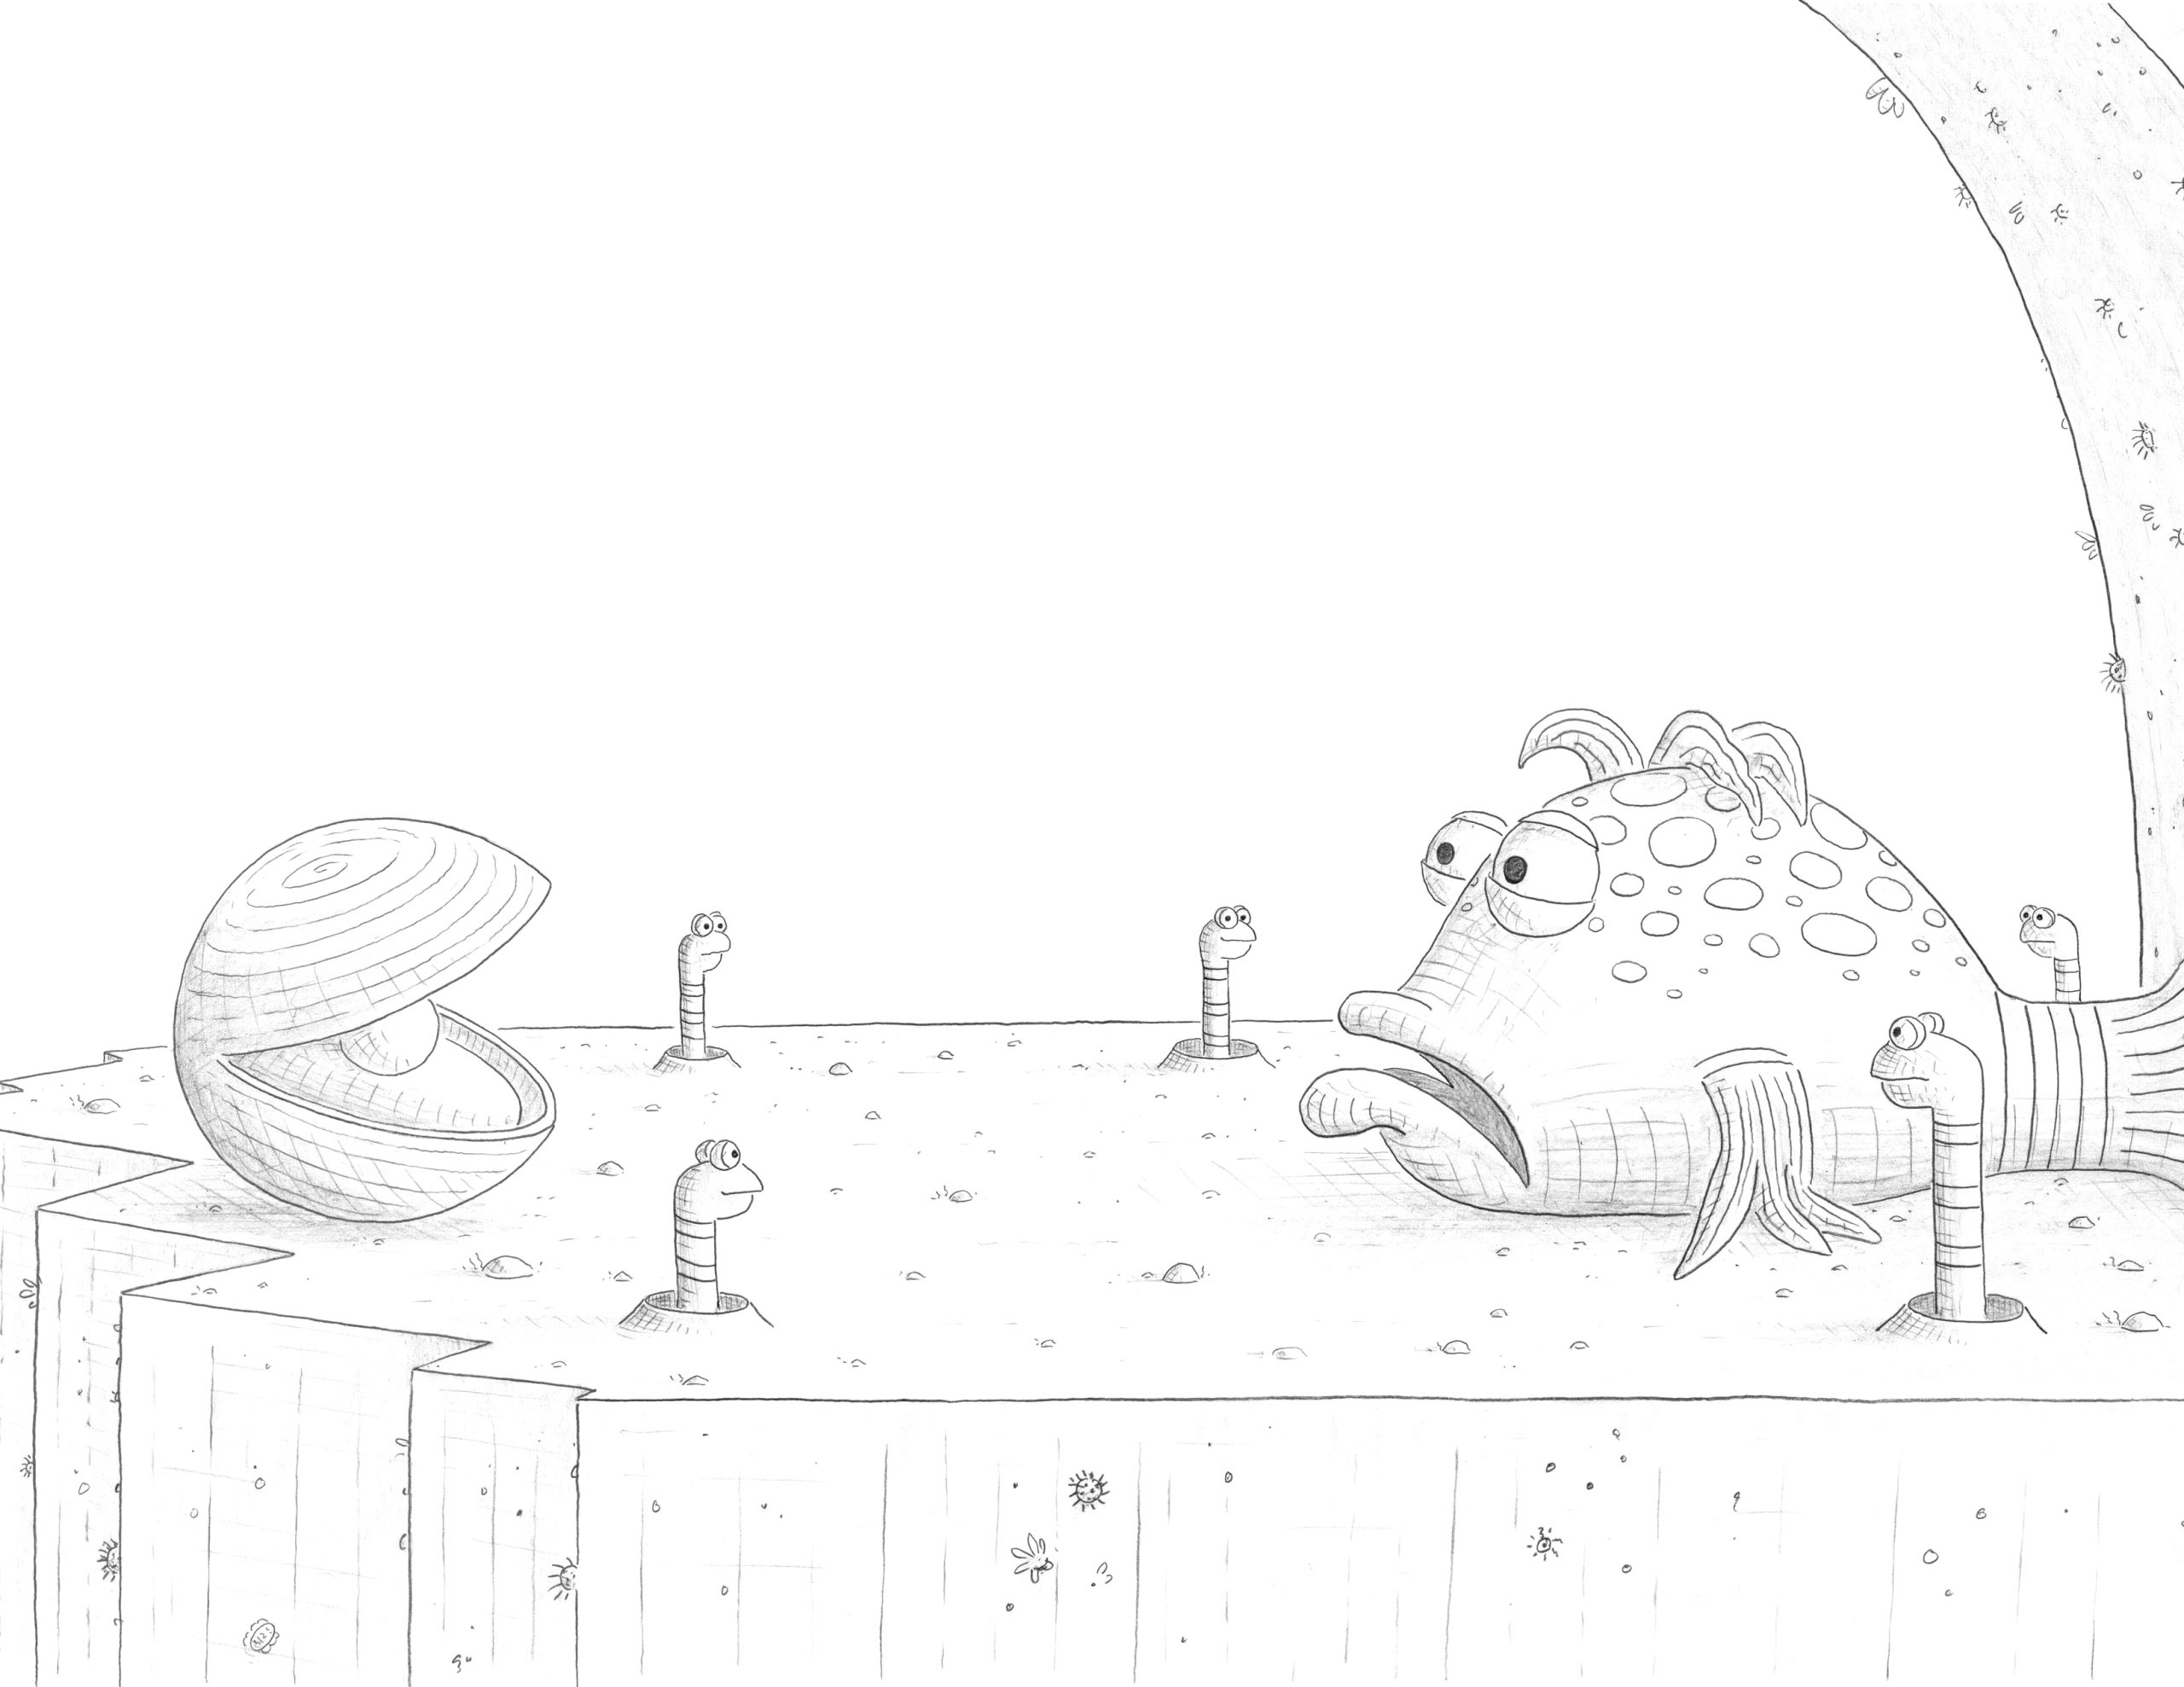 Pout Pout Fish Goes to School Coloring Pages Pout Pout Fish Goes to School Coloring Pages – Vingel